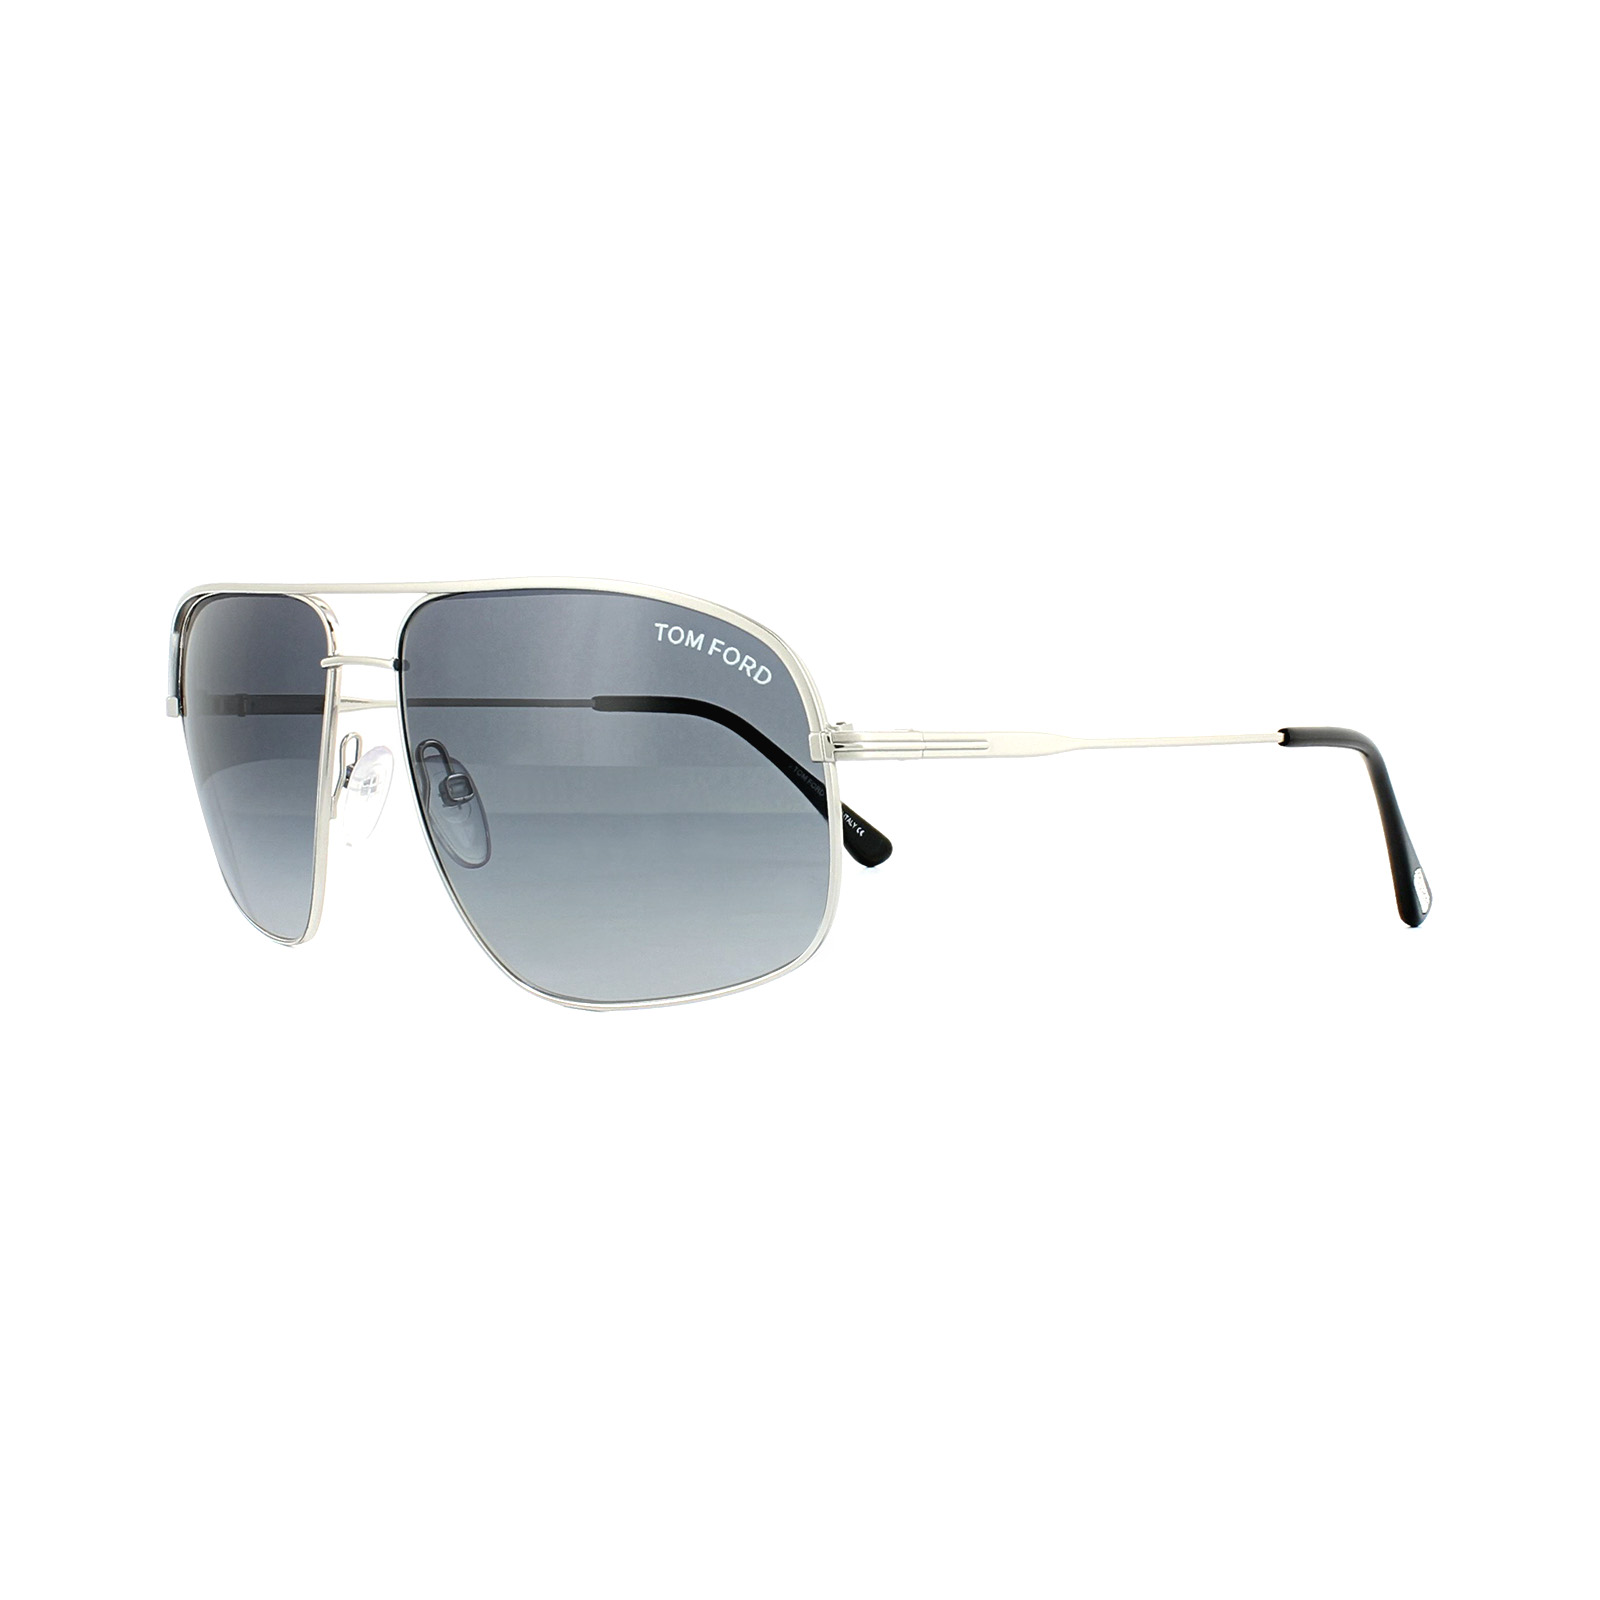 5e986cf961ccf8 Sentinel Tom Ford Sunglasses 0467 Justin 17W Matt Palladium Blue Gradient